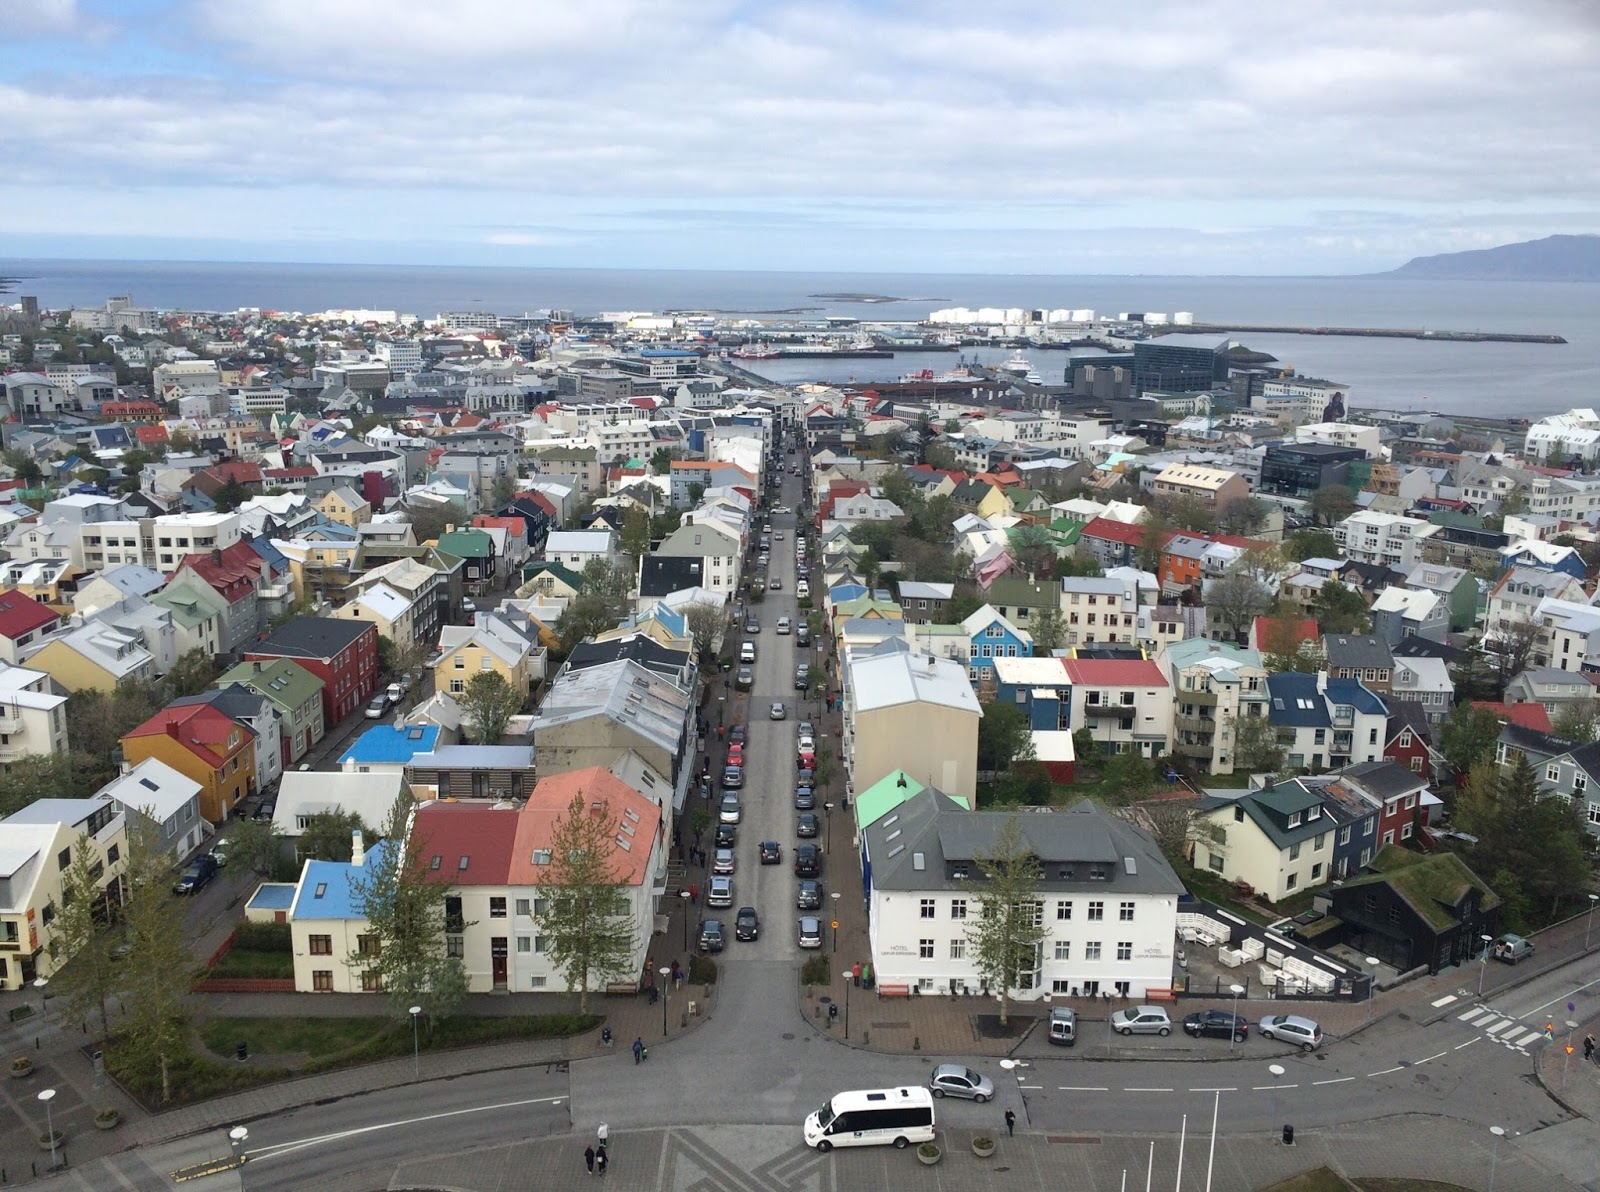 View on Reykjavik, Iceland from the top of the church